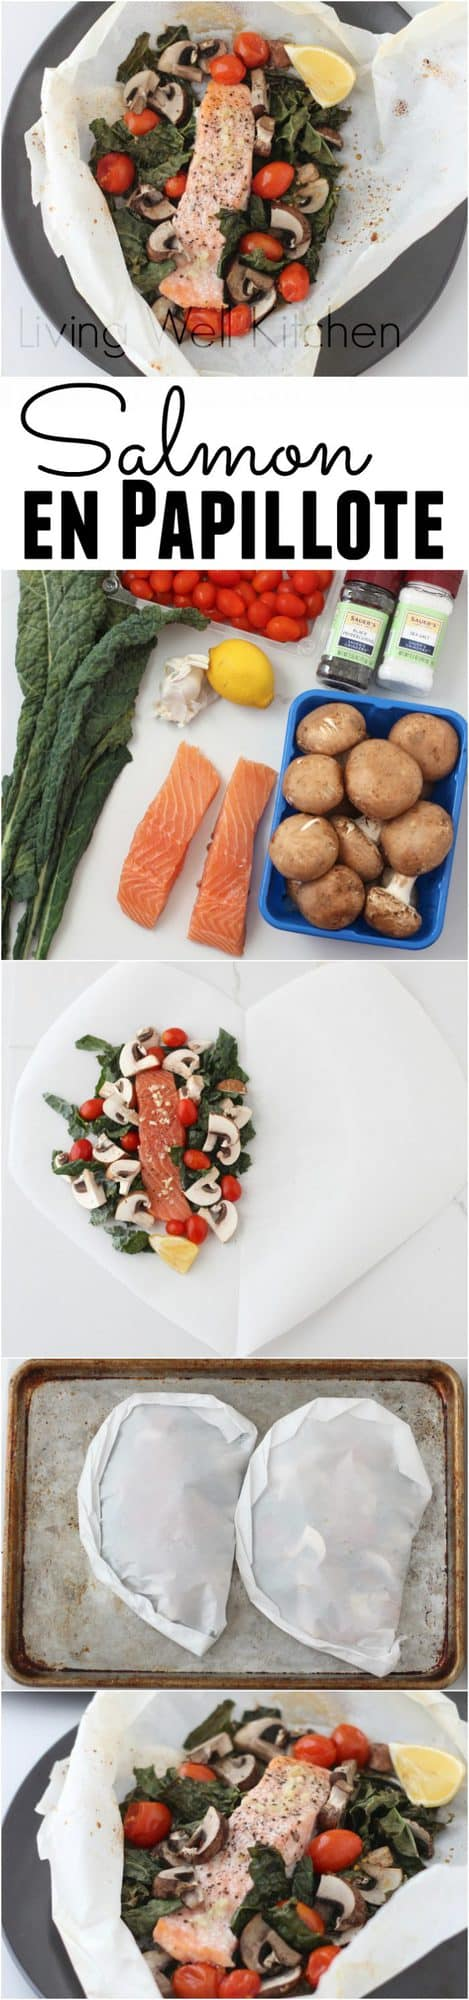 Simple heart health promoting ingredients, tons of veggies, and easy clean up make this Salmon en Papillote recipe a dream come true. Great for a quick, healthy dinner that is full of flavor. Gluten-free, dairy-free